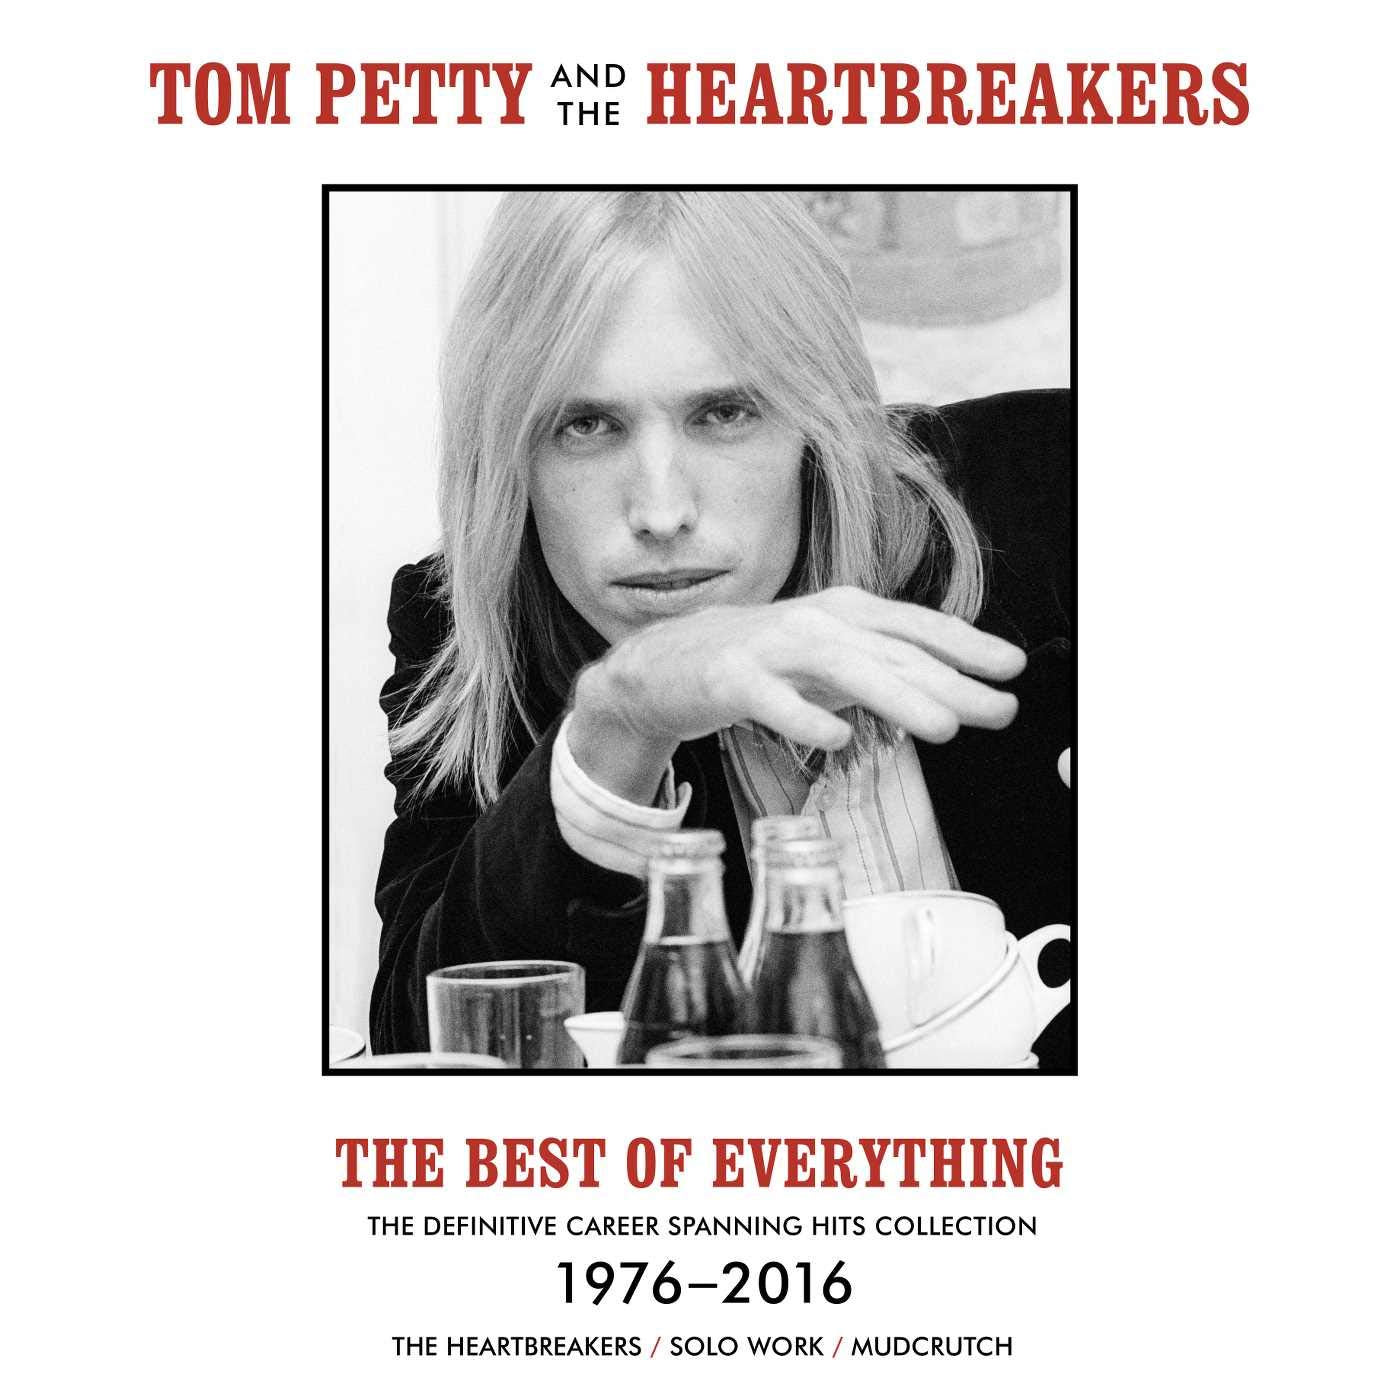 Tom Petty And The Heartbreakers - The Best Of Everything - New 4 Lp Record Box Set 2019 USA Geffen USA Vinyl & Book - Classic Rock